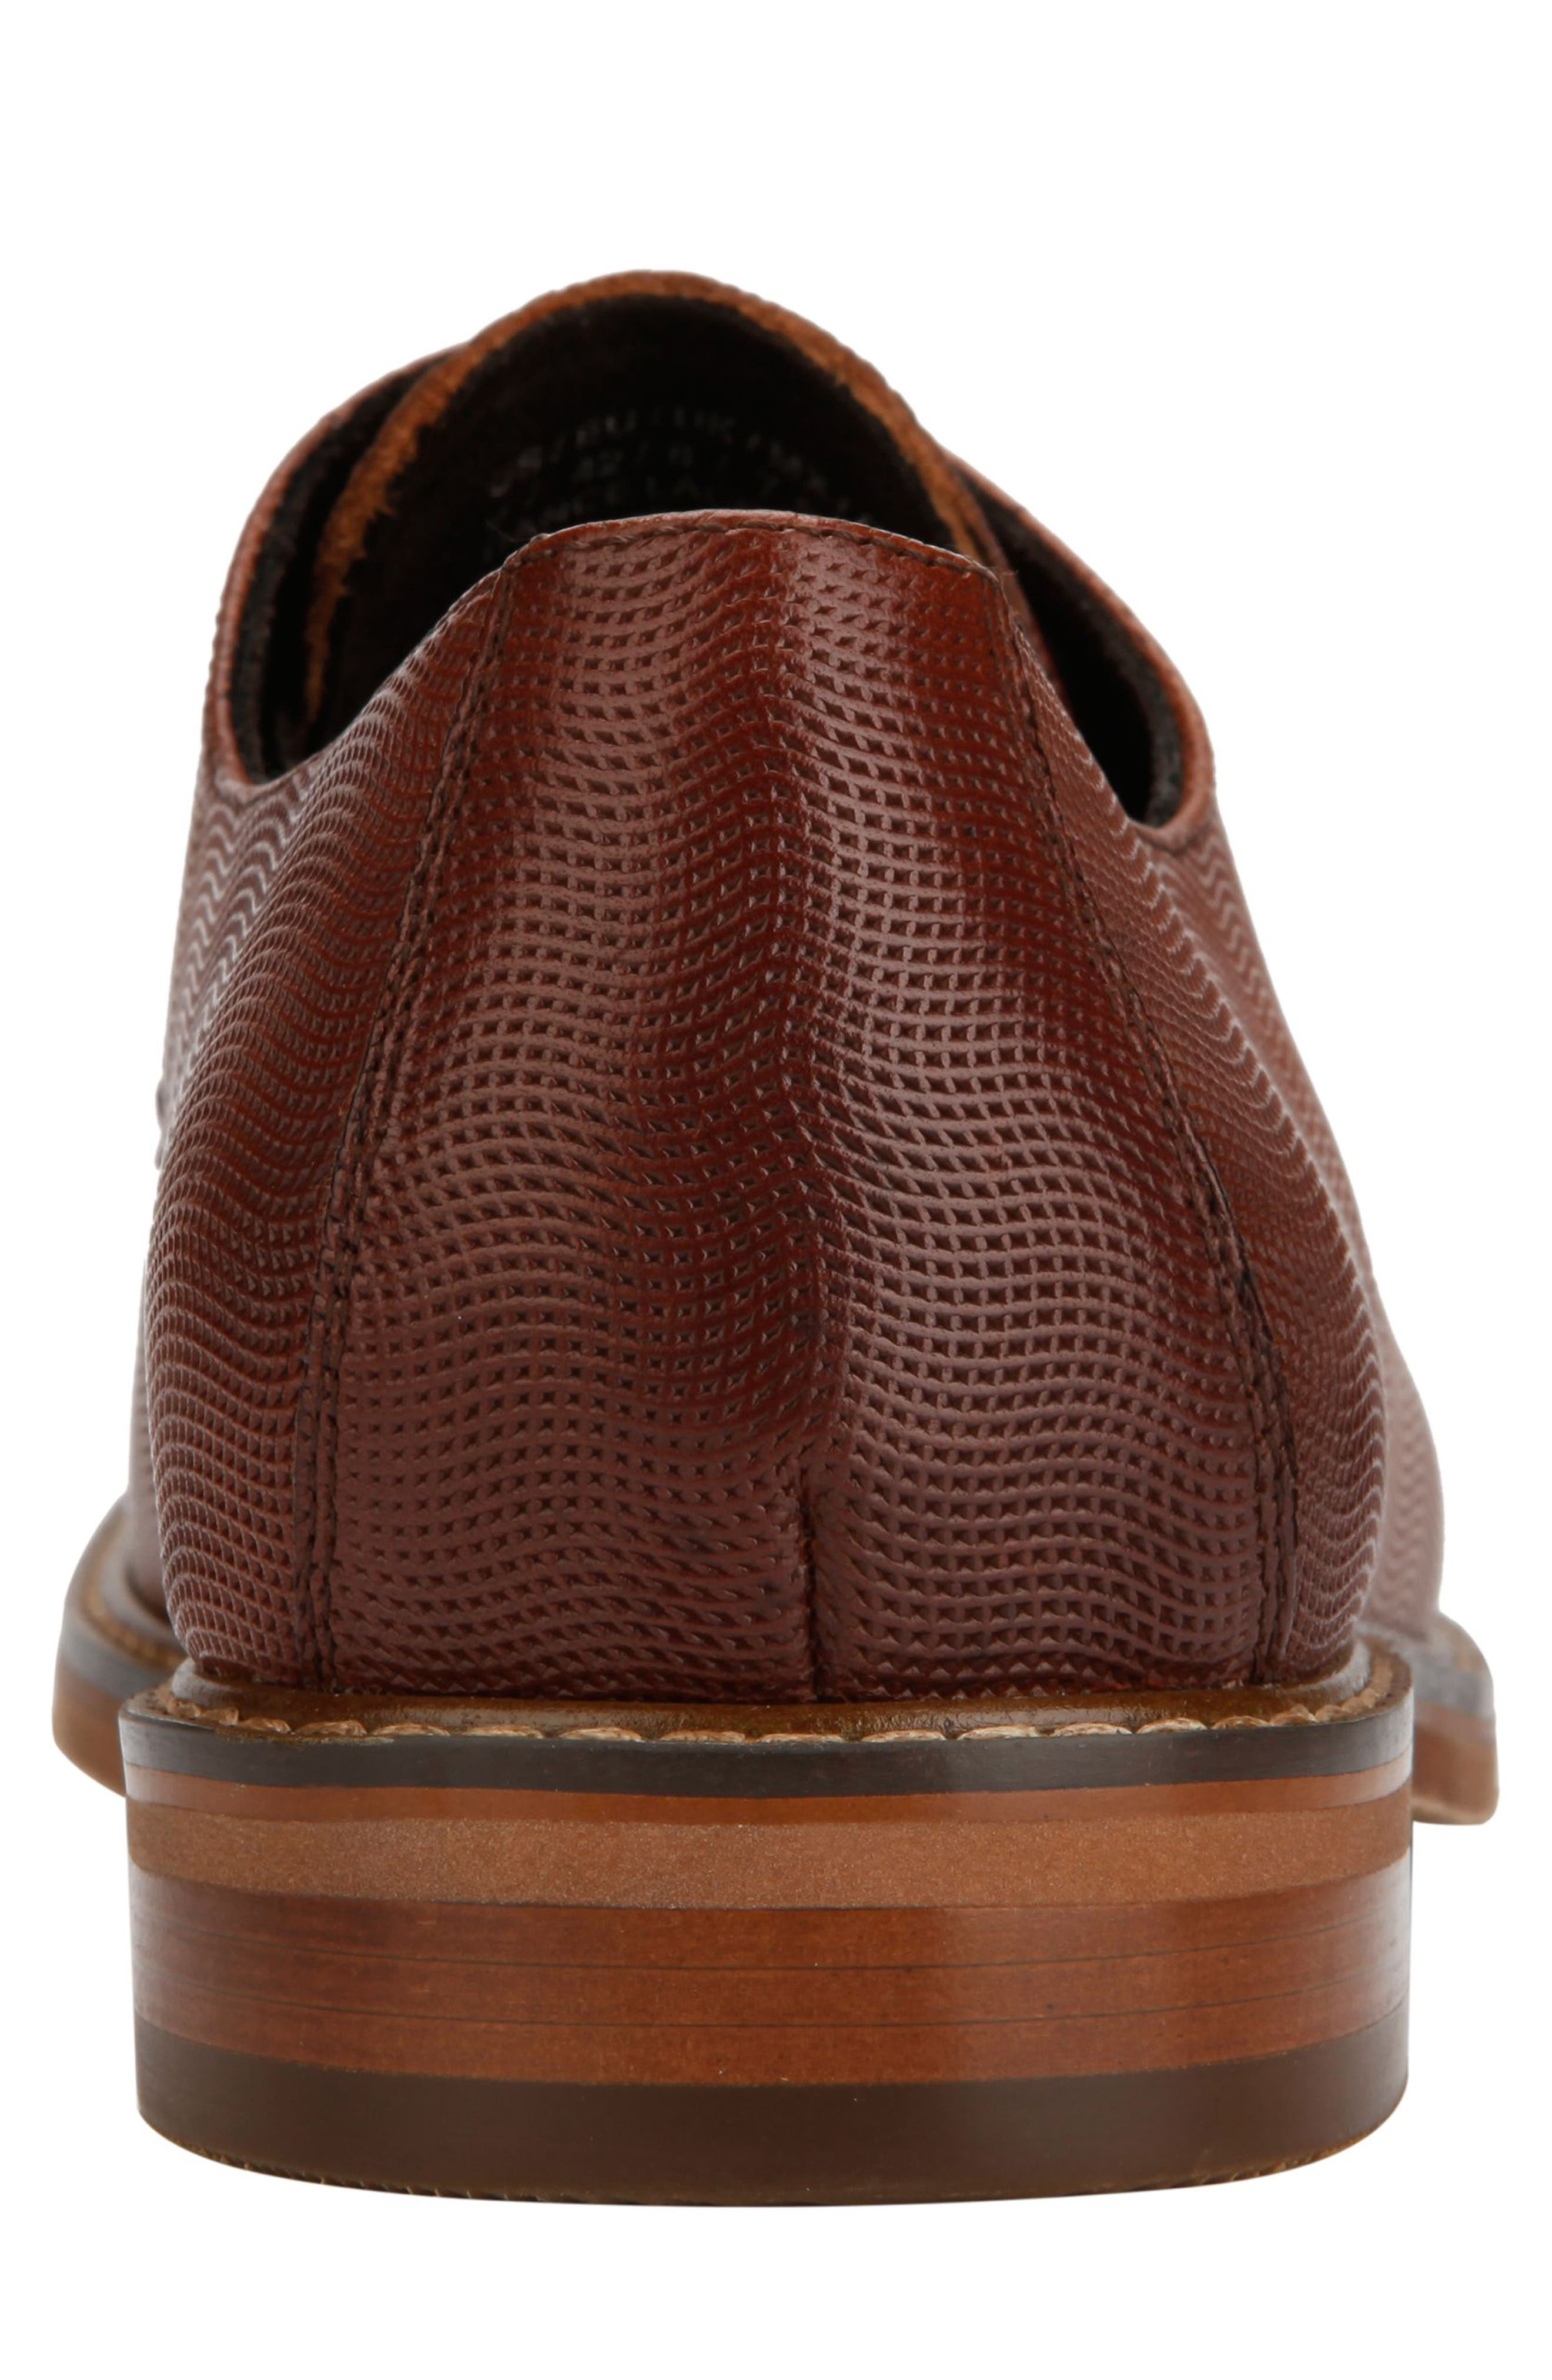 KENNETH COLE NEW YORK, Dance Textured Plain Toe Derby, Alternate thumbnail 5, color, COGNAC EMBOSSED LEATHER